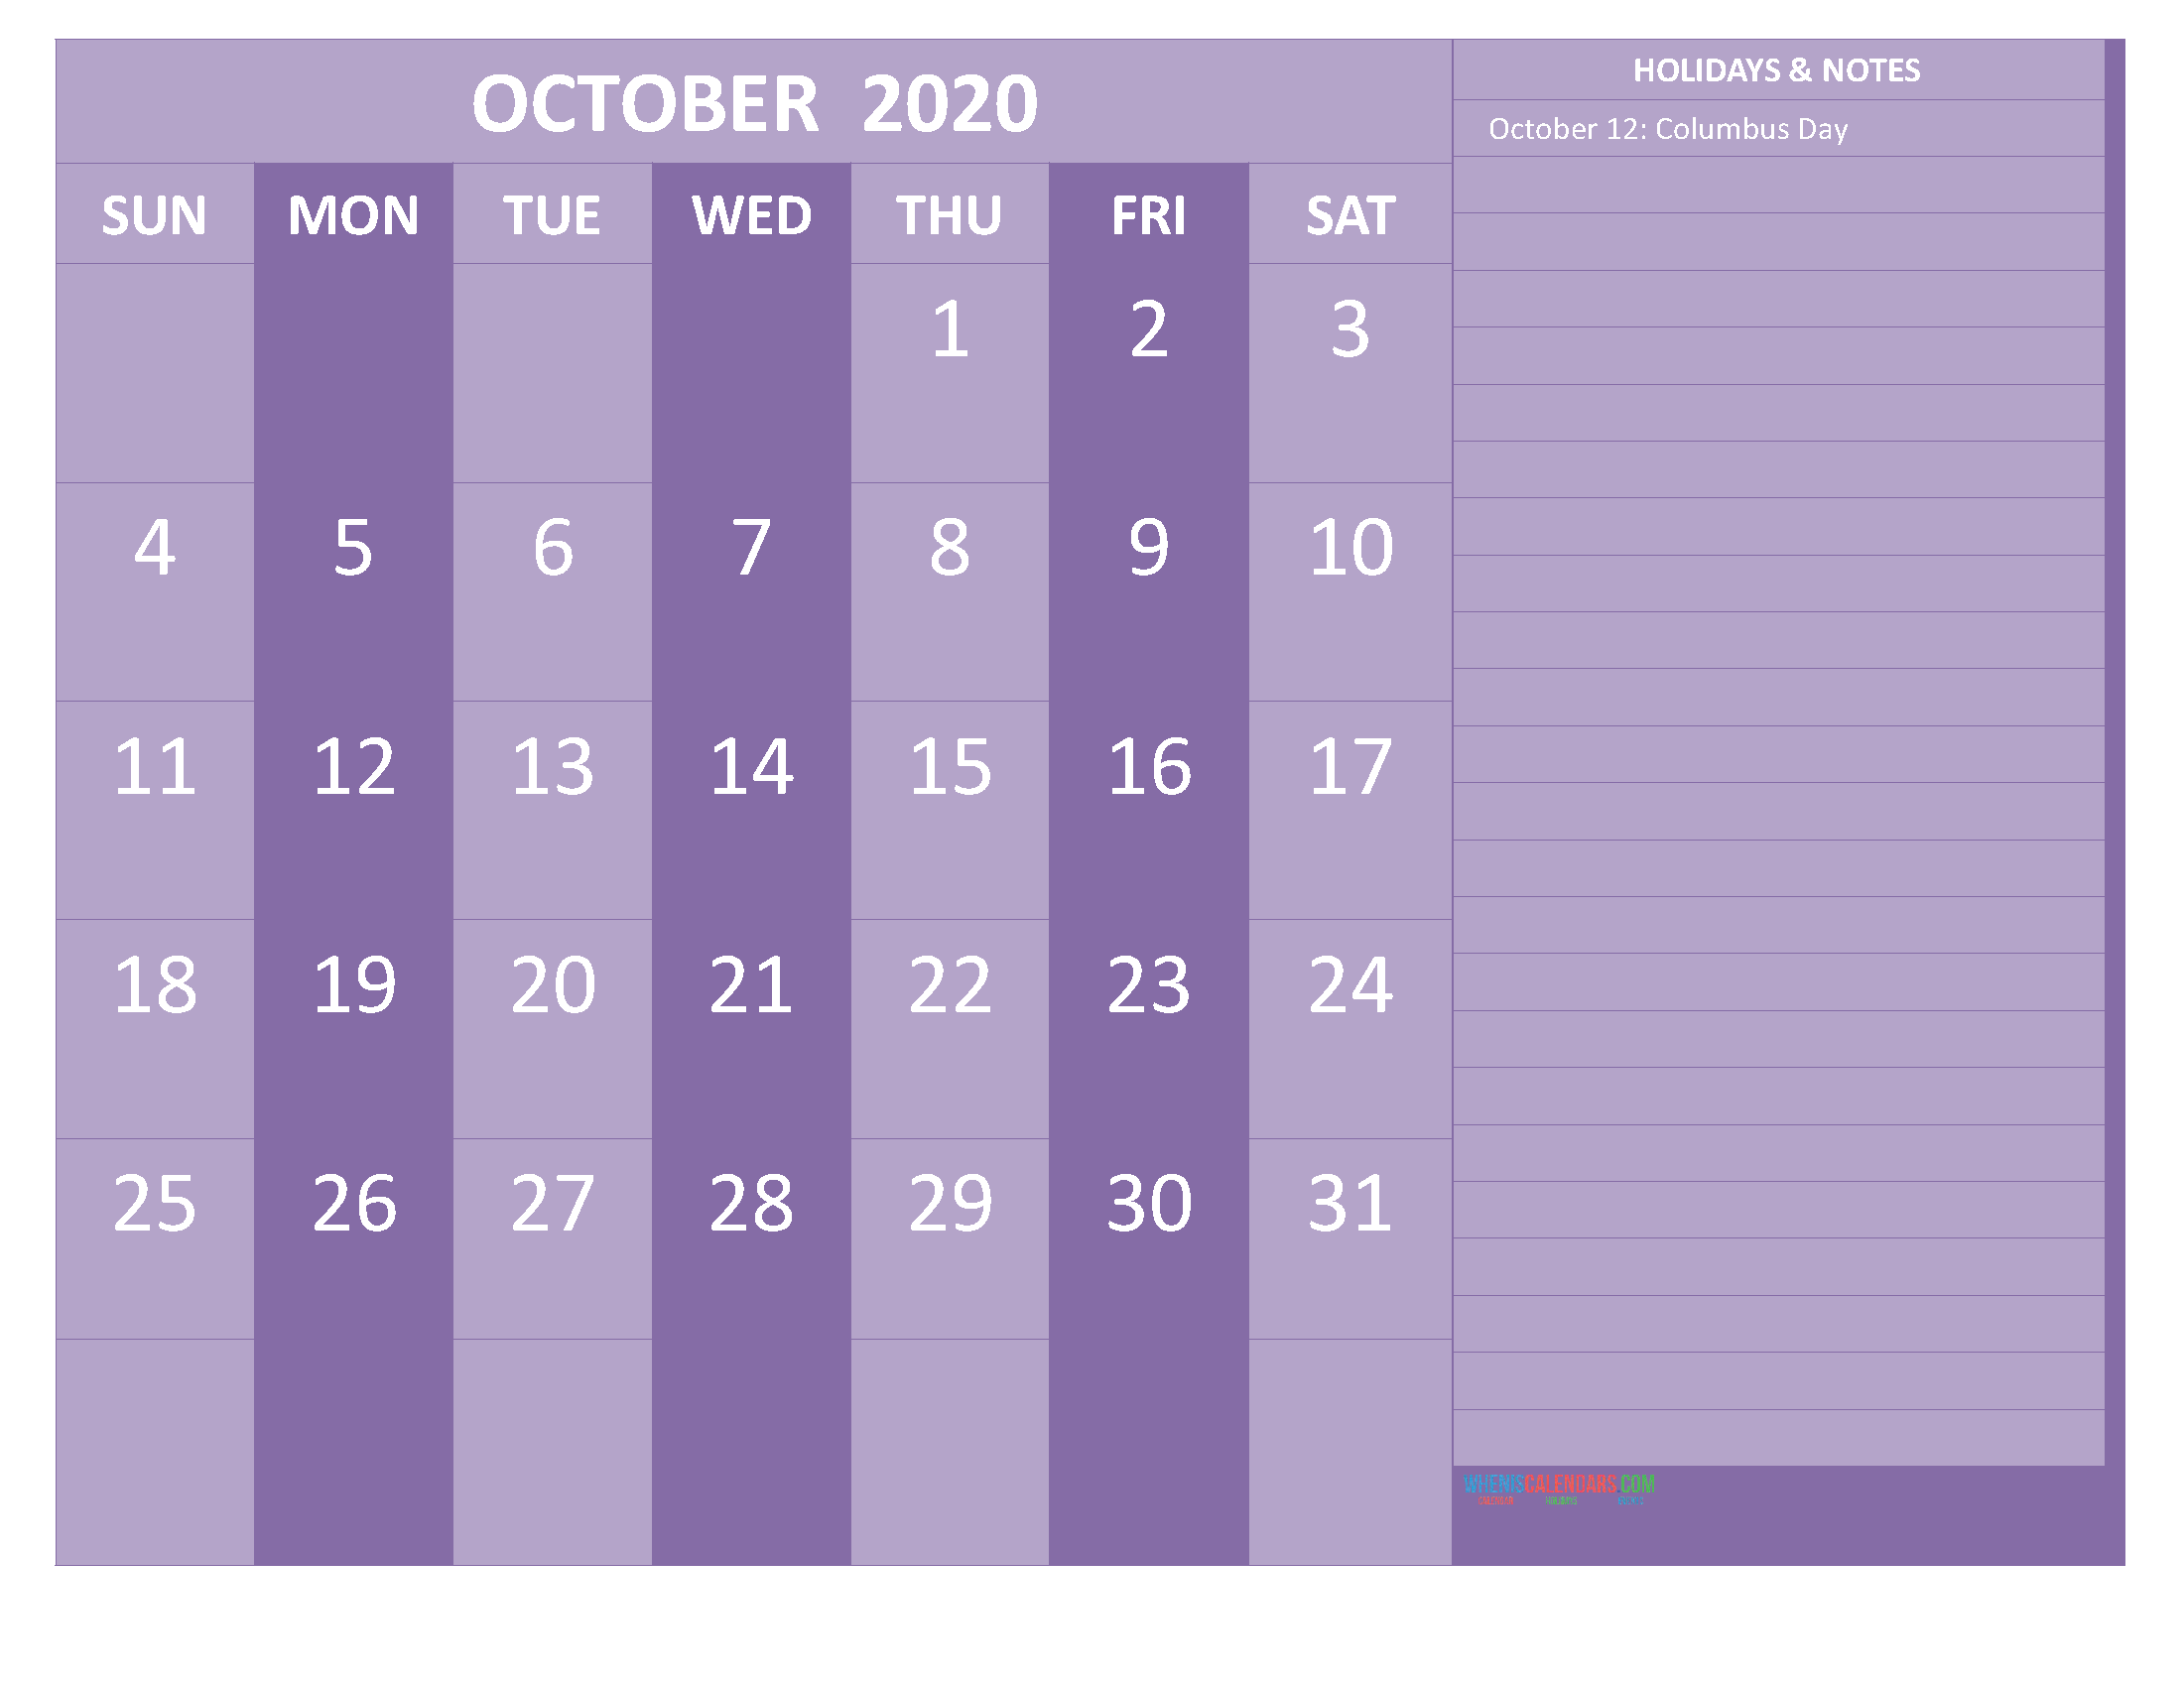 Free Monthly Printable Calendar 2020 October with Holidays